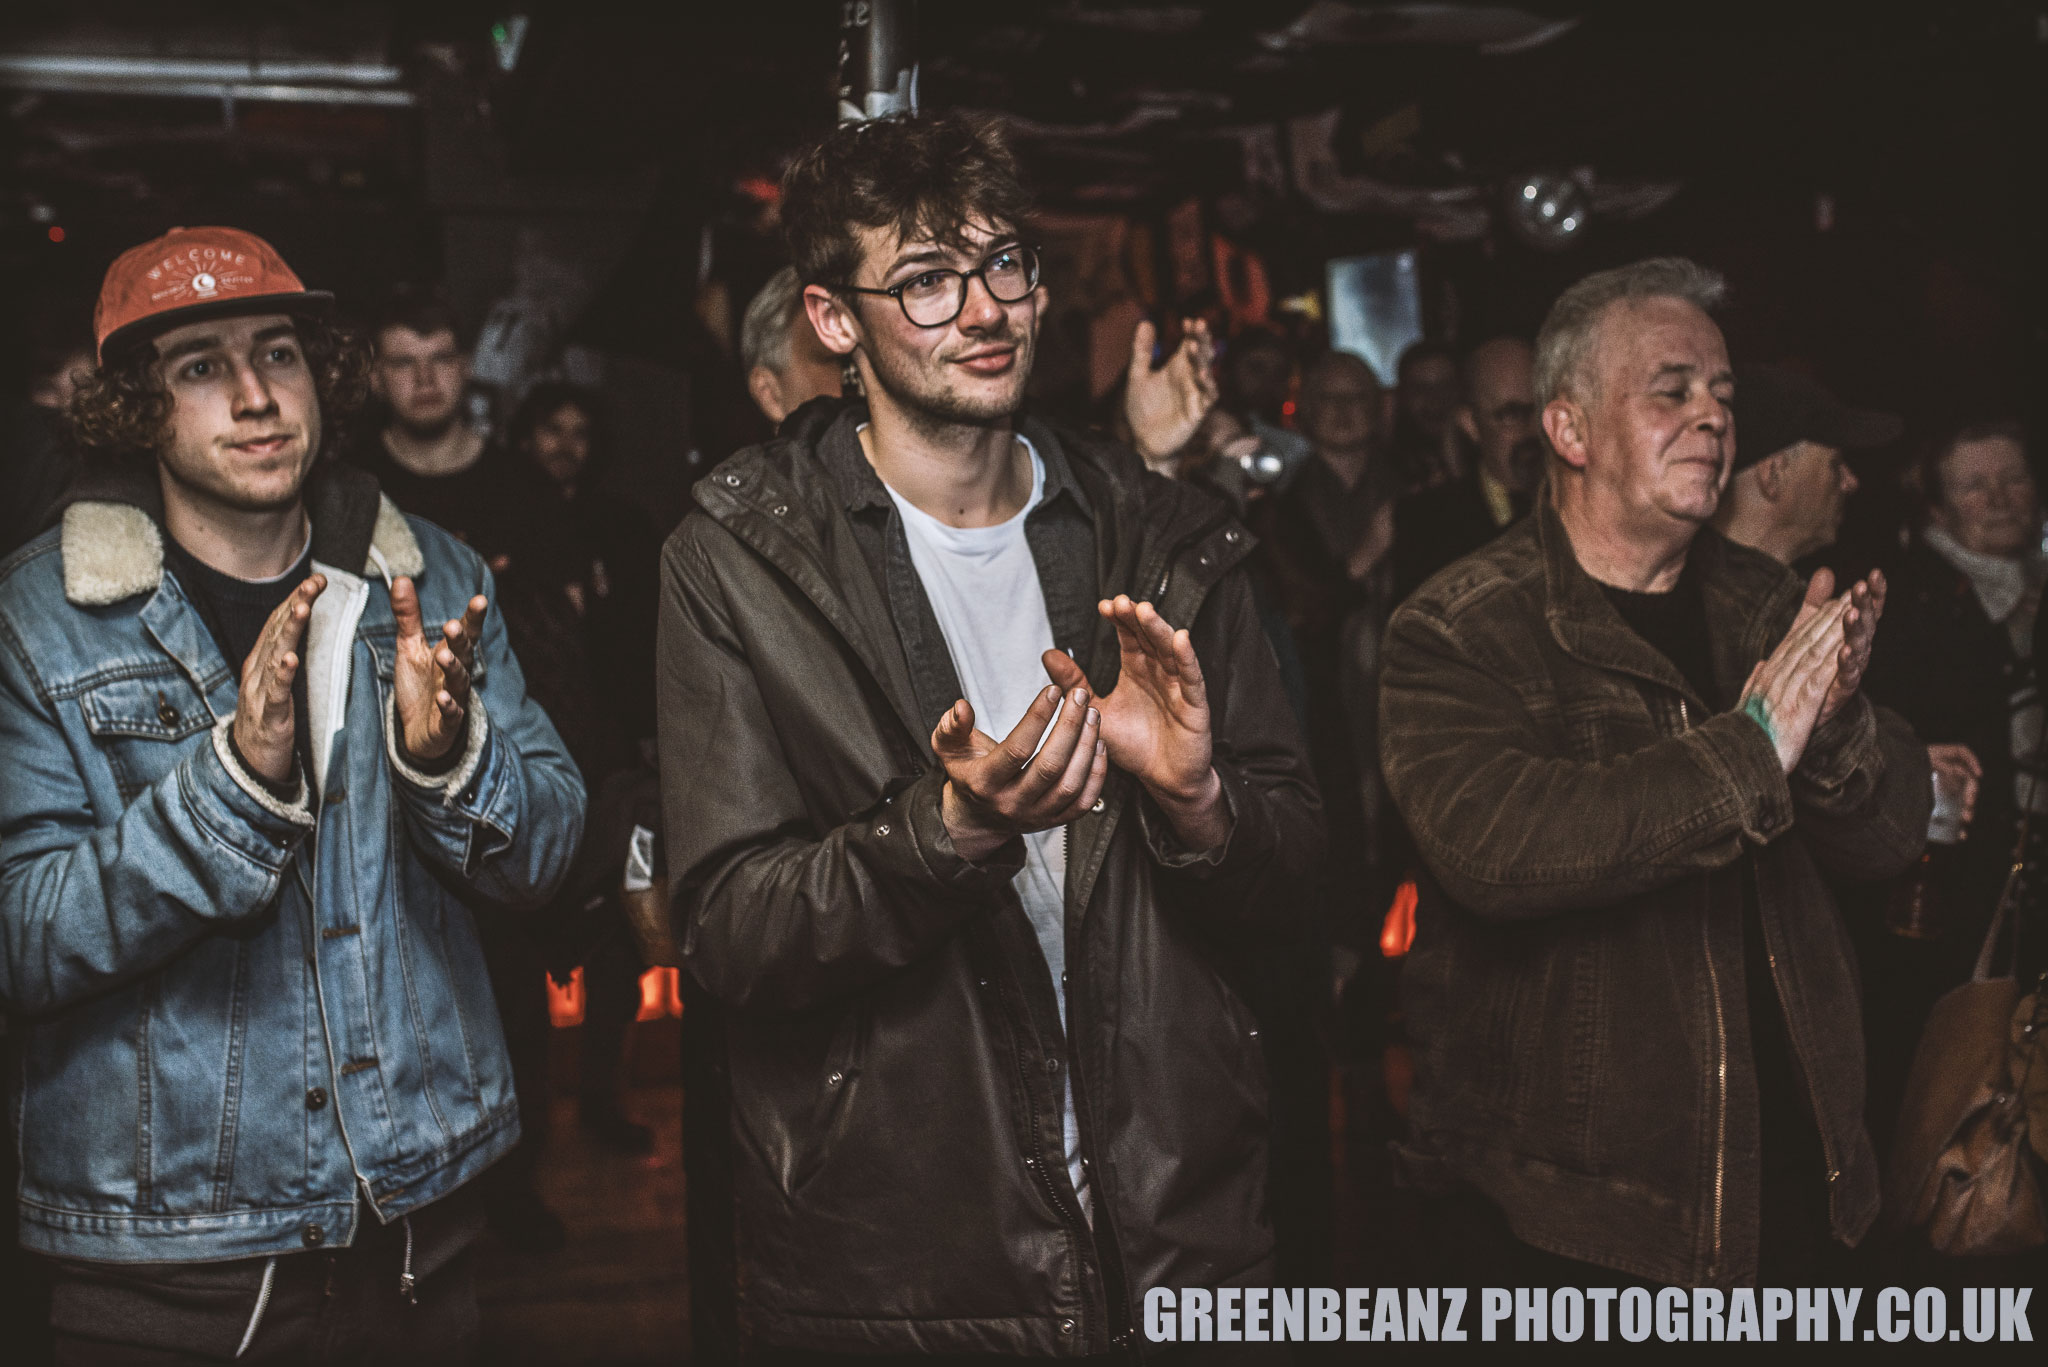 Plymouth Roots/Folk Fans in 2018 at Underground in Plymouth